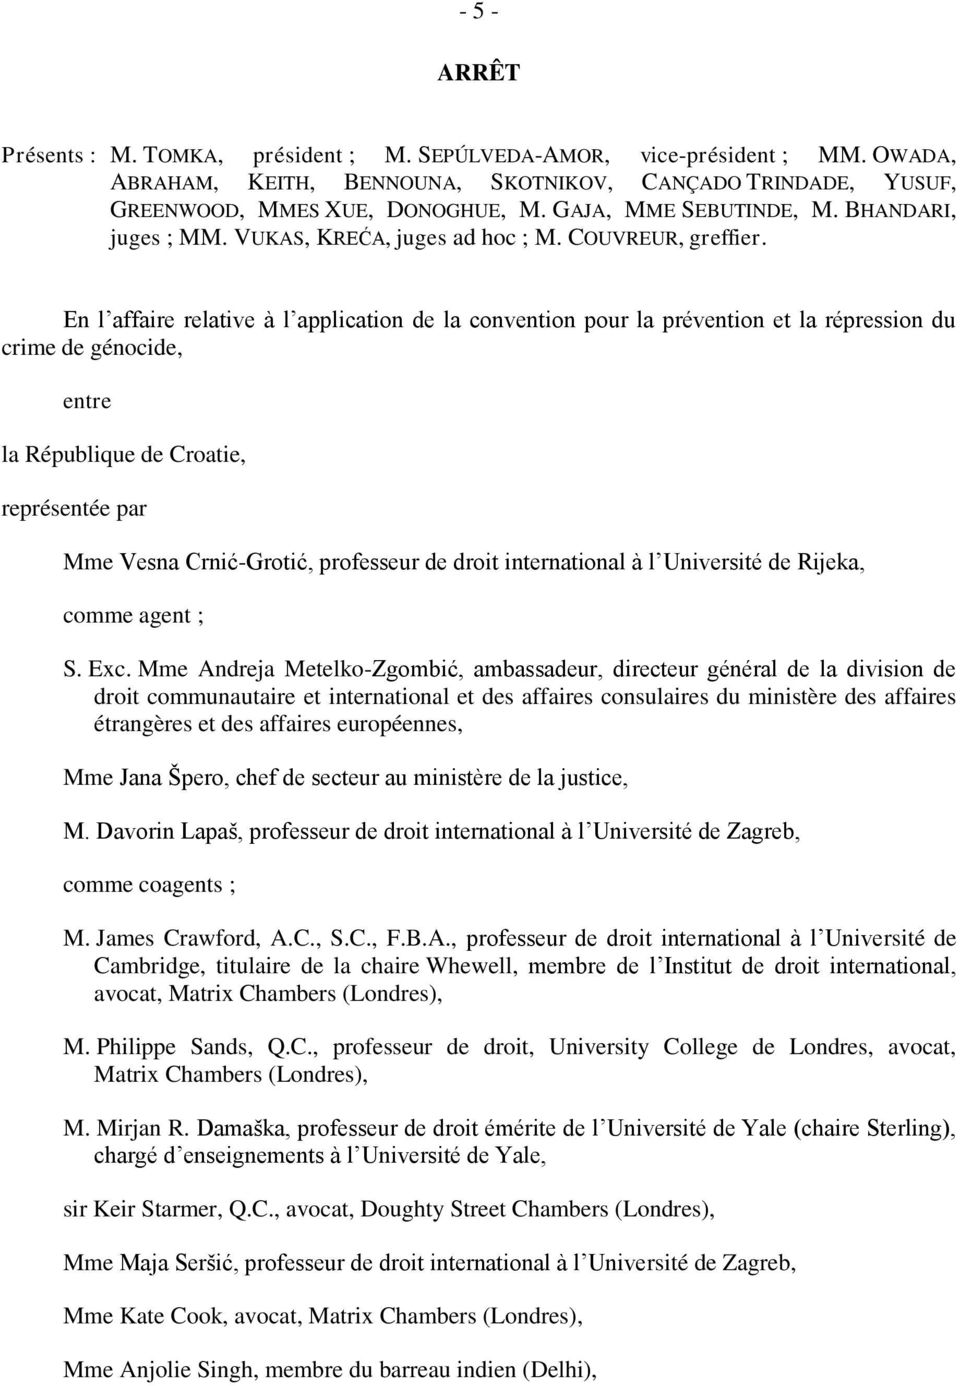 En l affaire relative à l application de la convention pour la prévention et la répression du crime de génocide, entre la République de Croatie, représentée par Mme Vesna Crnić-Grotić, professeur de